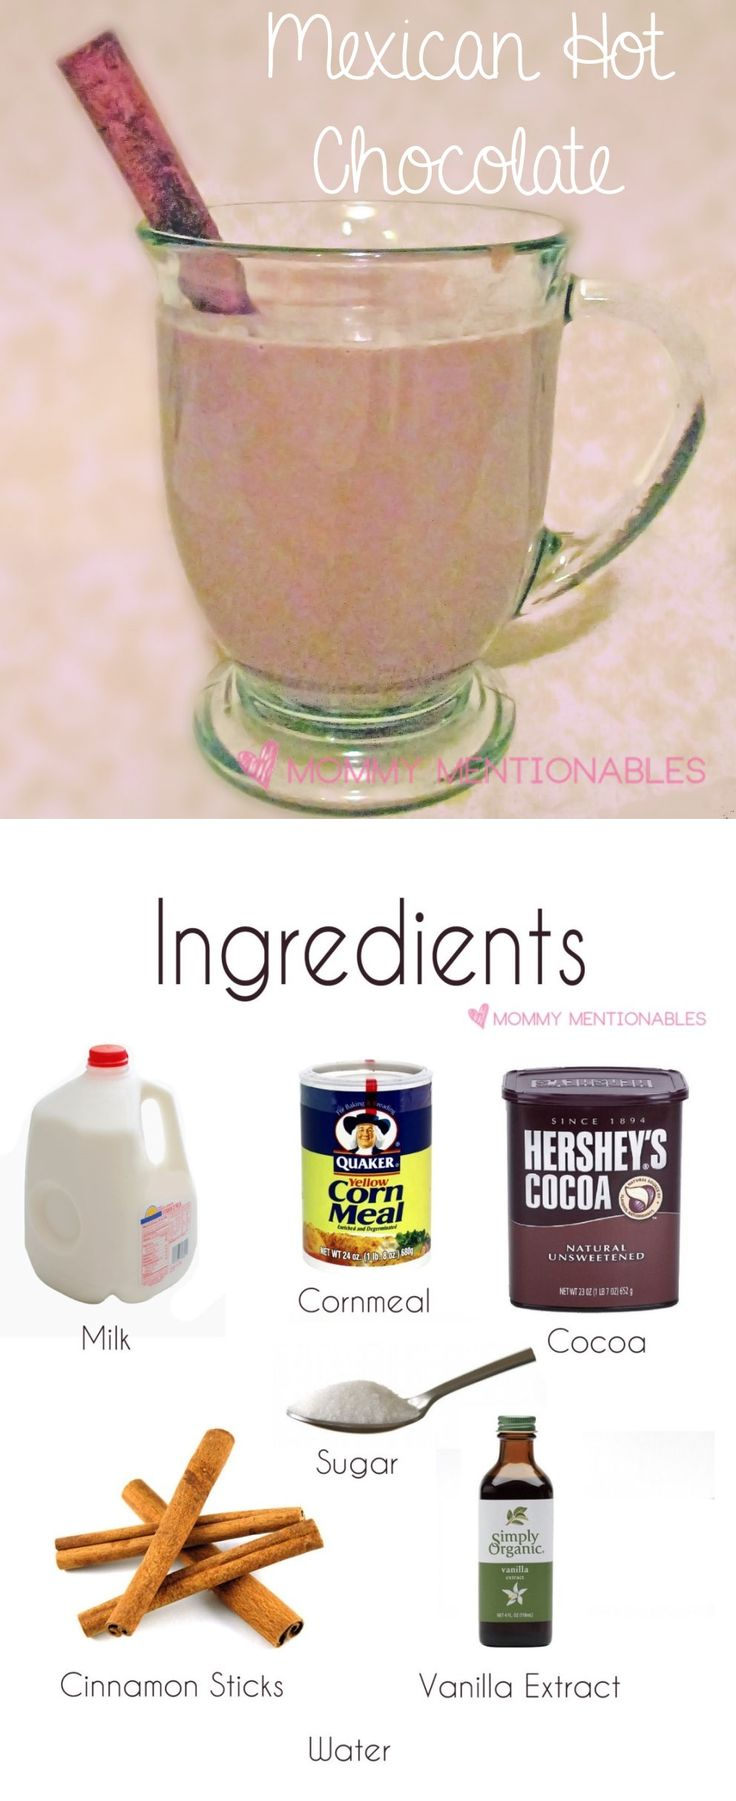 How to make Mexican Hot Chocolate. (Champurrado) A delicious hot chocolate drink. #recipe #hotchocolate #sweetdrinks